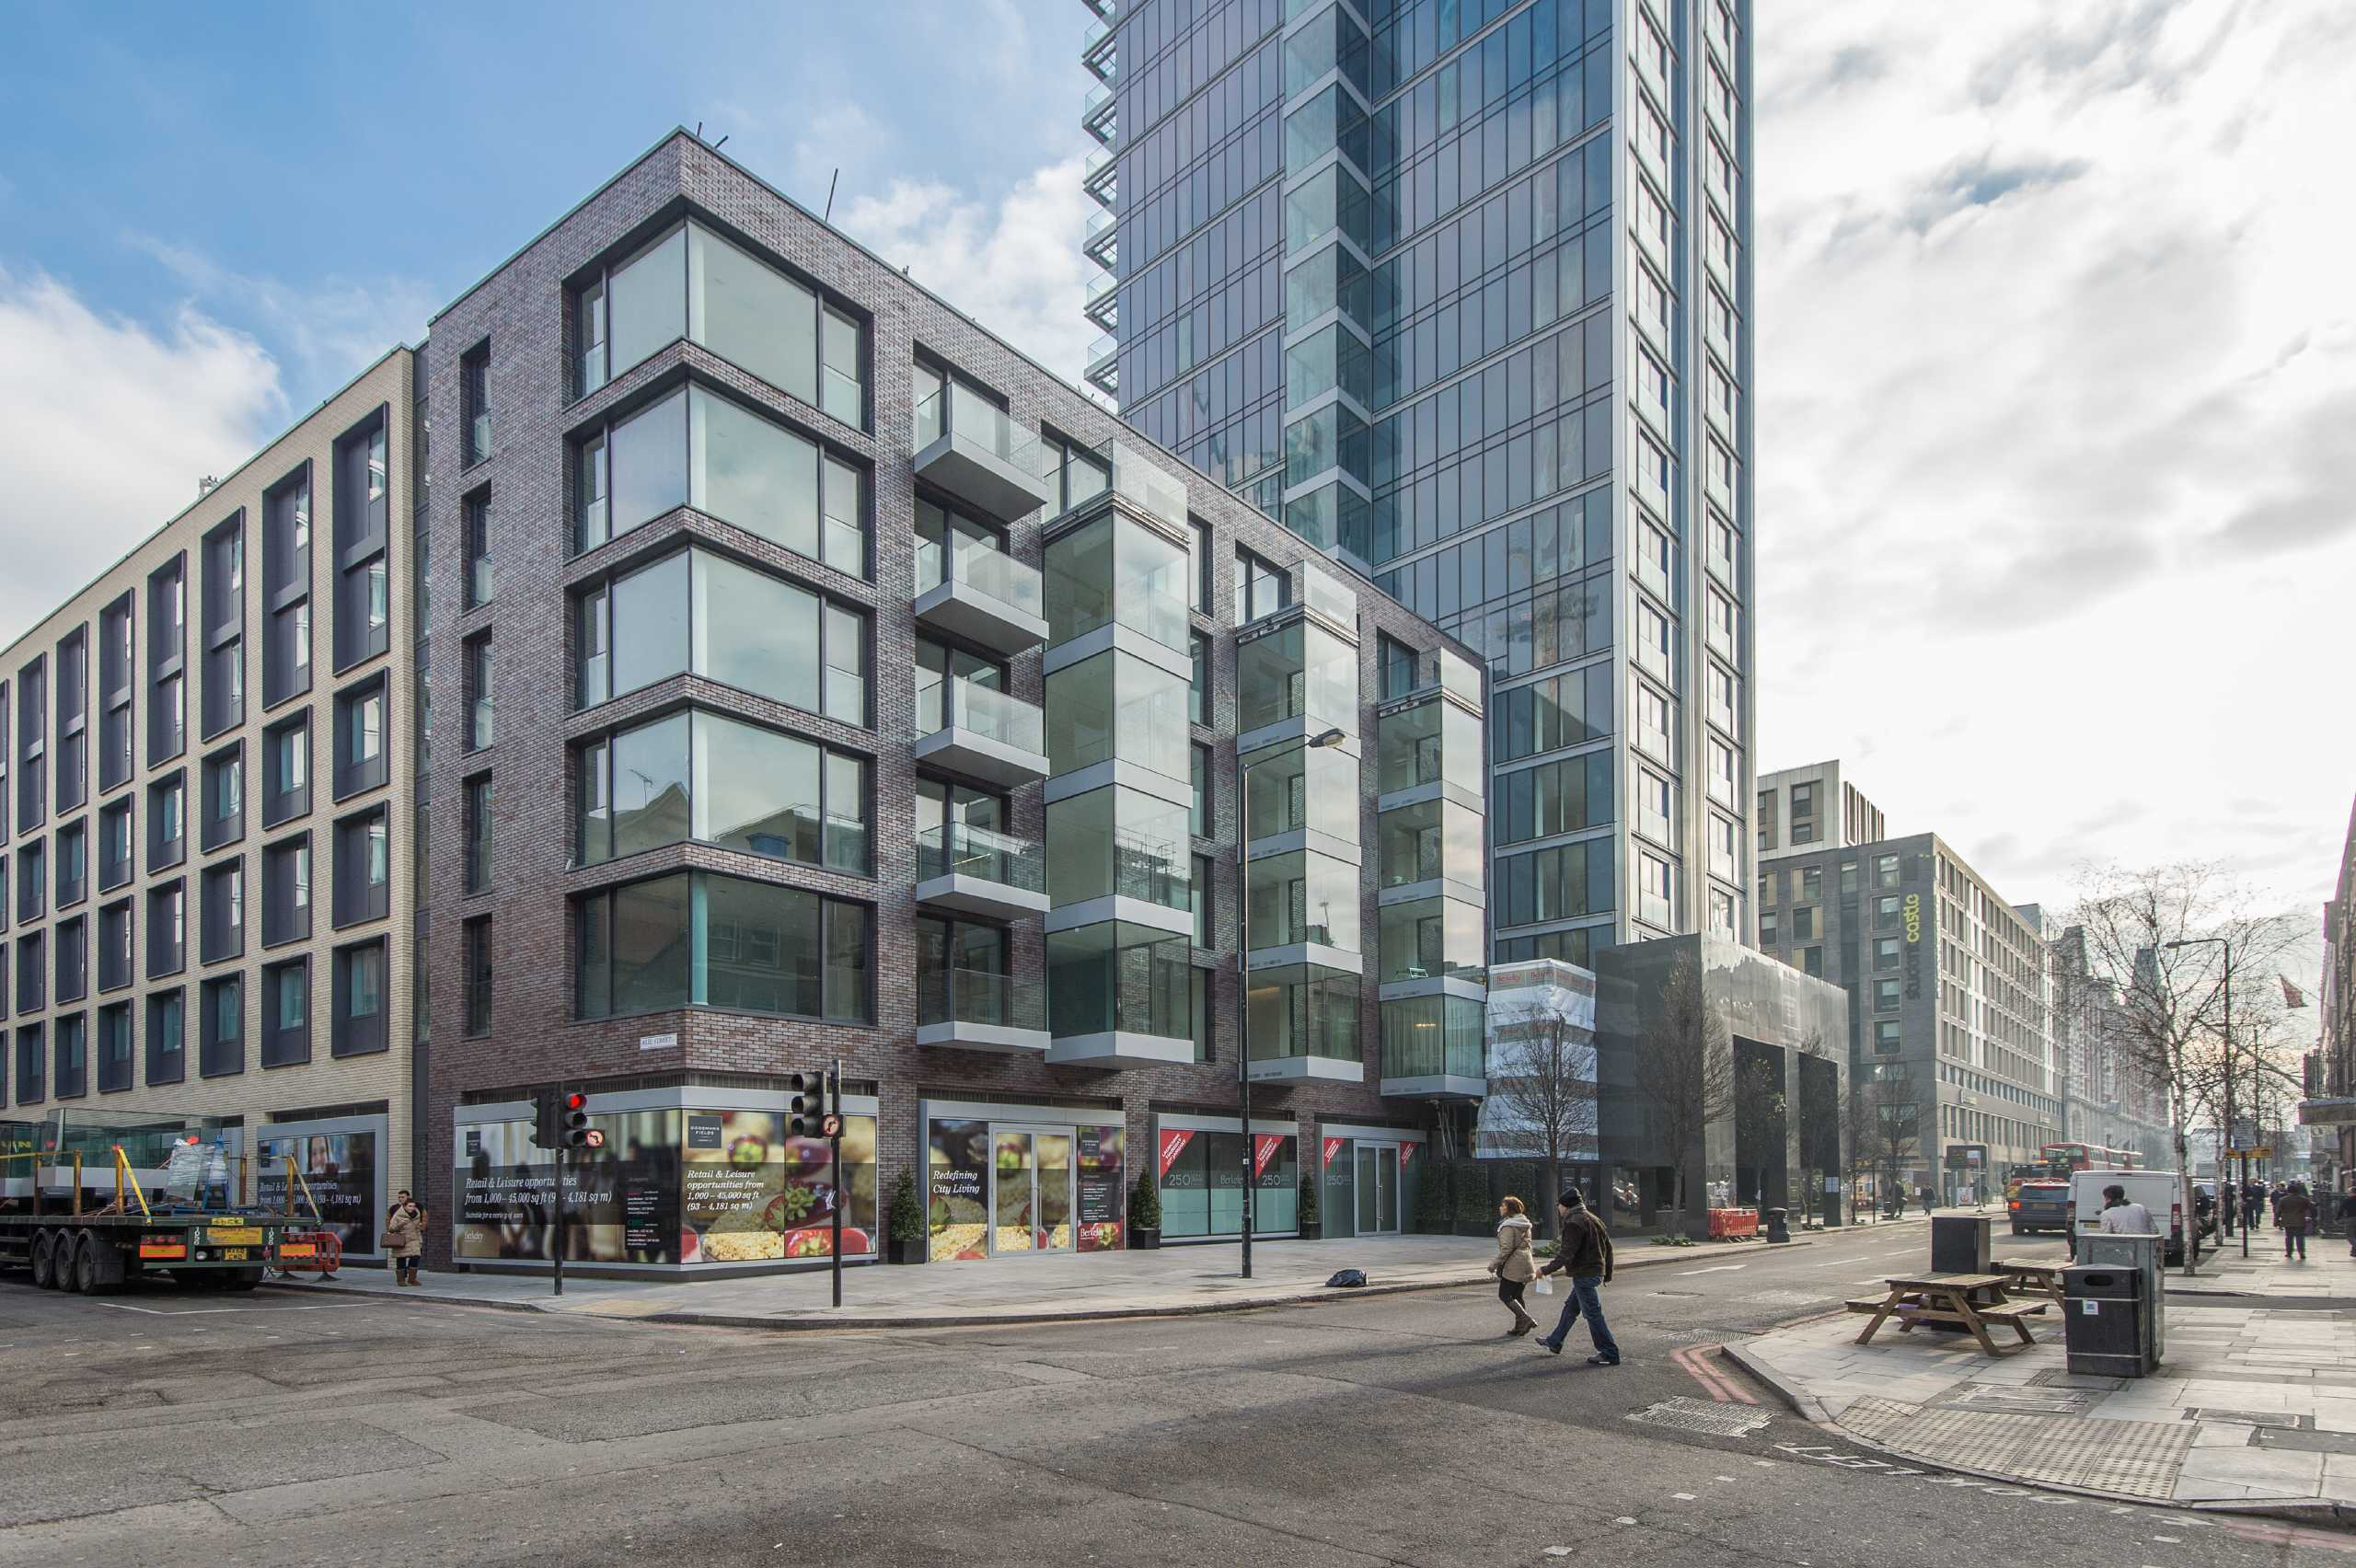 2 Bedrooms Apartment Flat for sale in Kingwood Gardens, Goodmans Field, Aldgate, London, E1